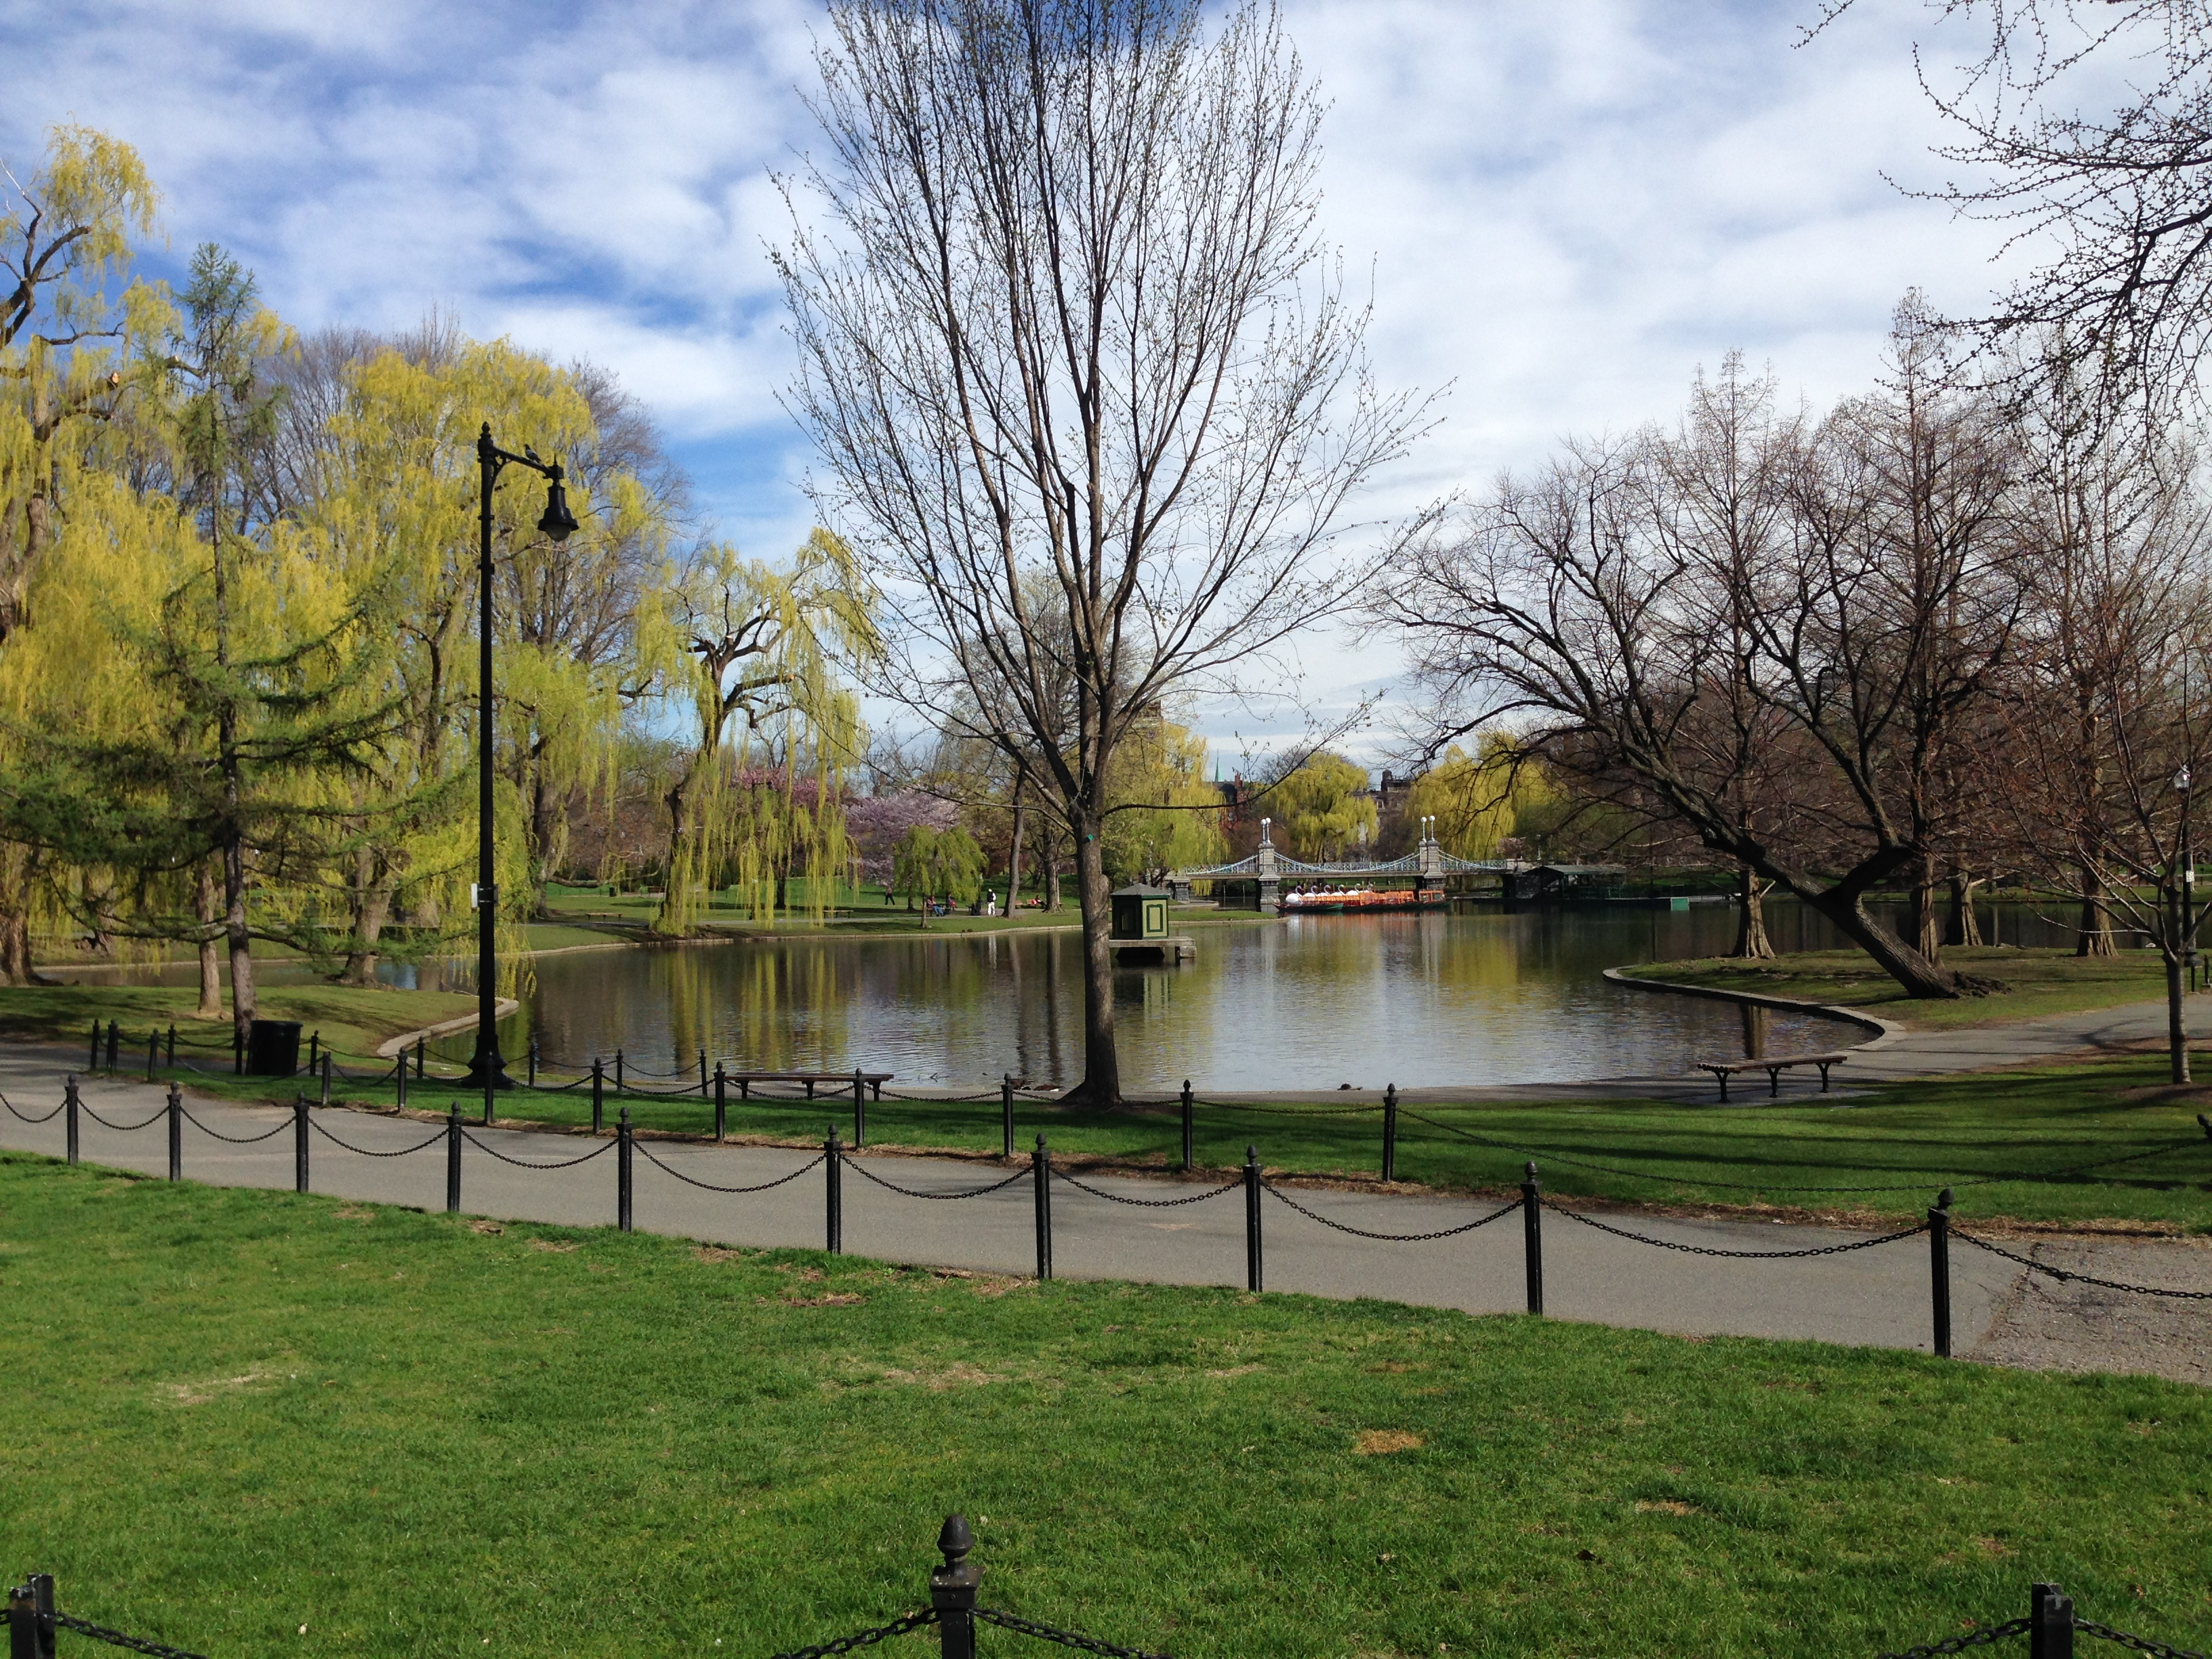 A view of Boston Public Garden, with swan boats visible in the background